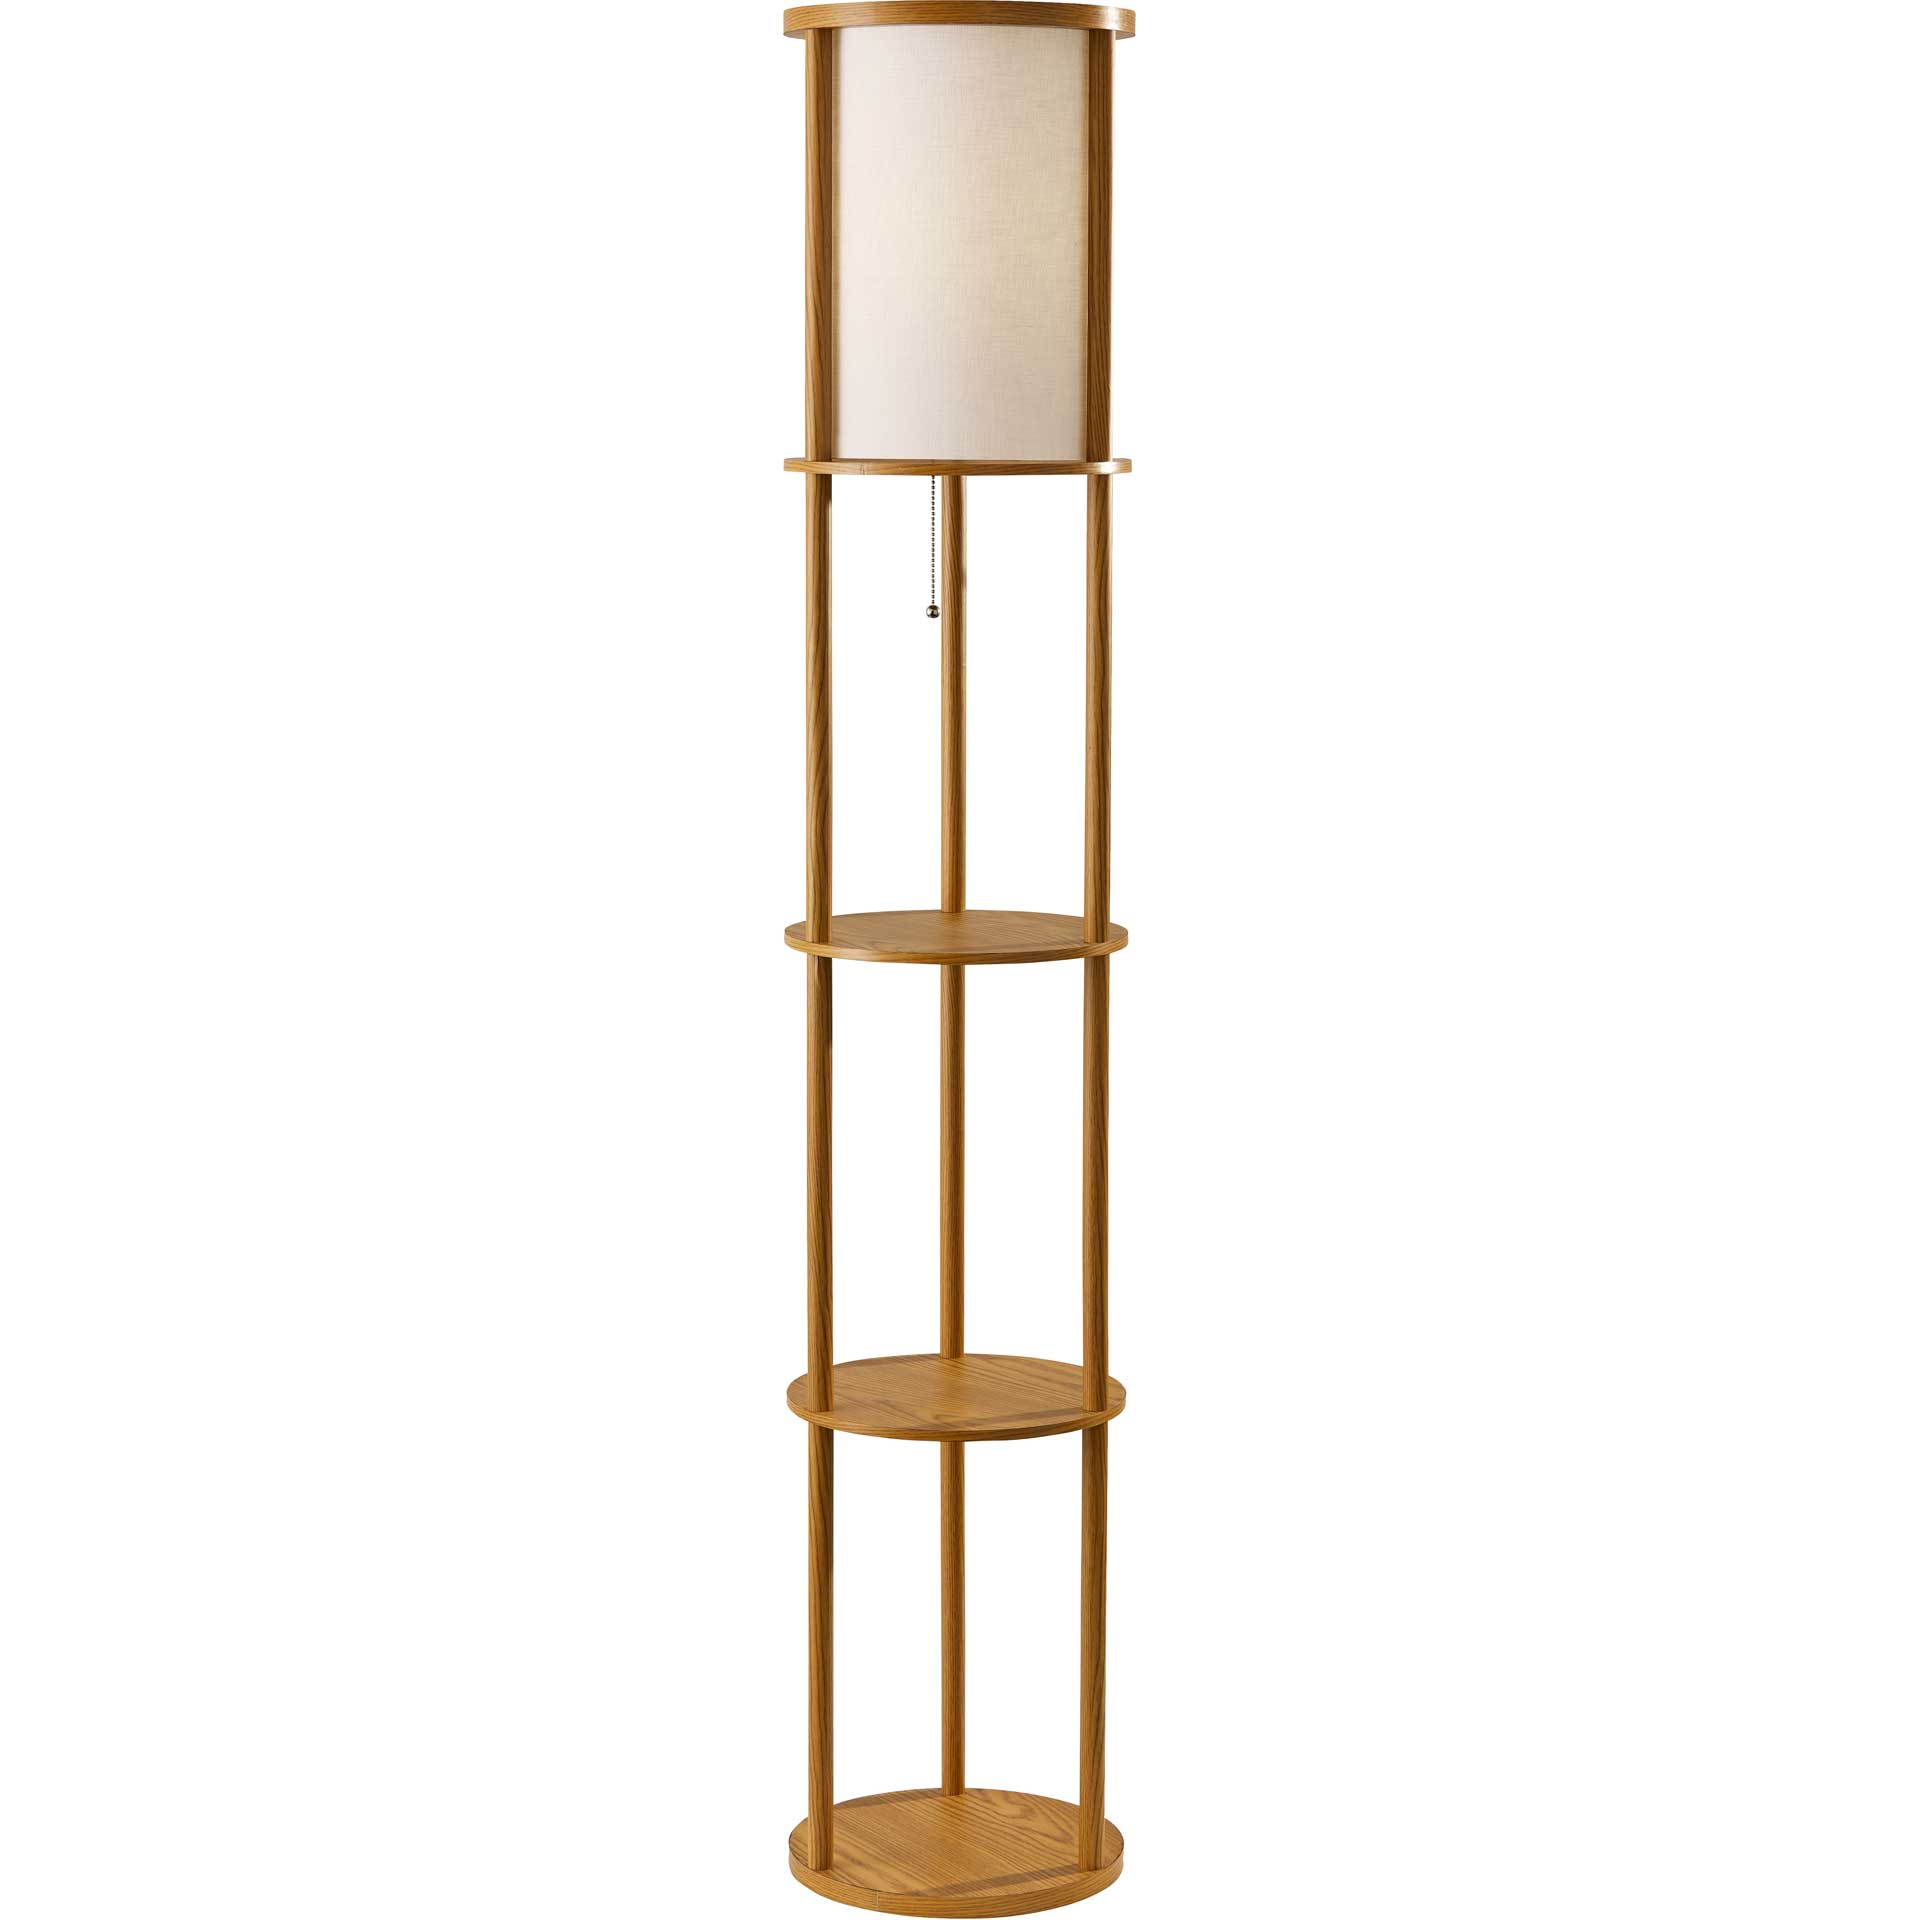 Stavanger Round Shelf Floor Lamp Natural/Brown